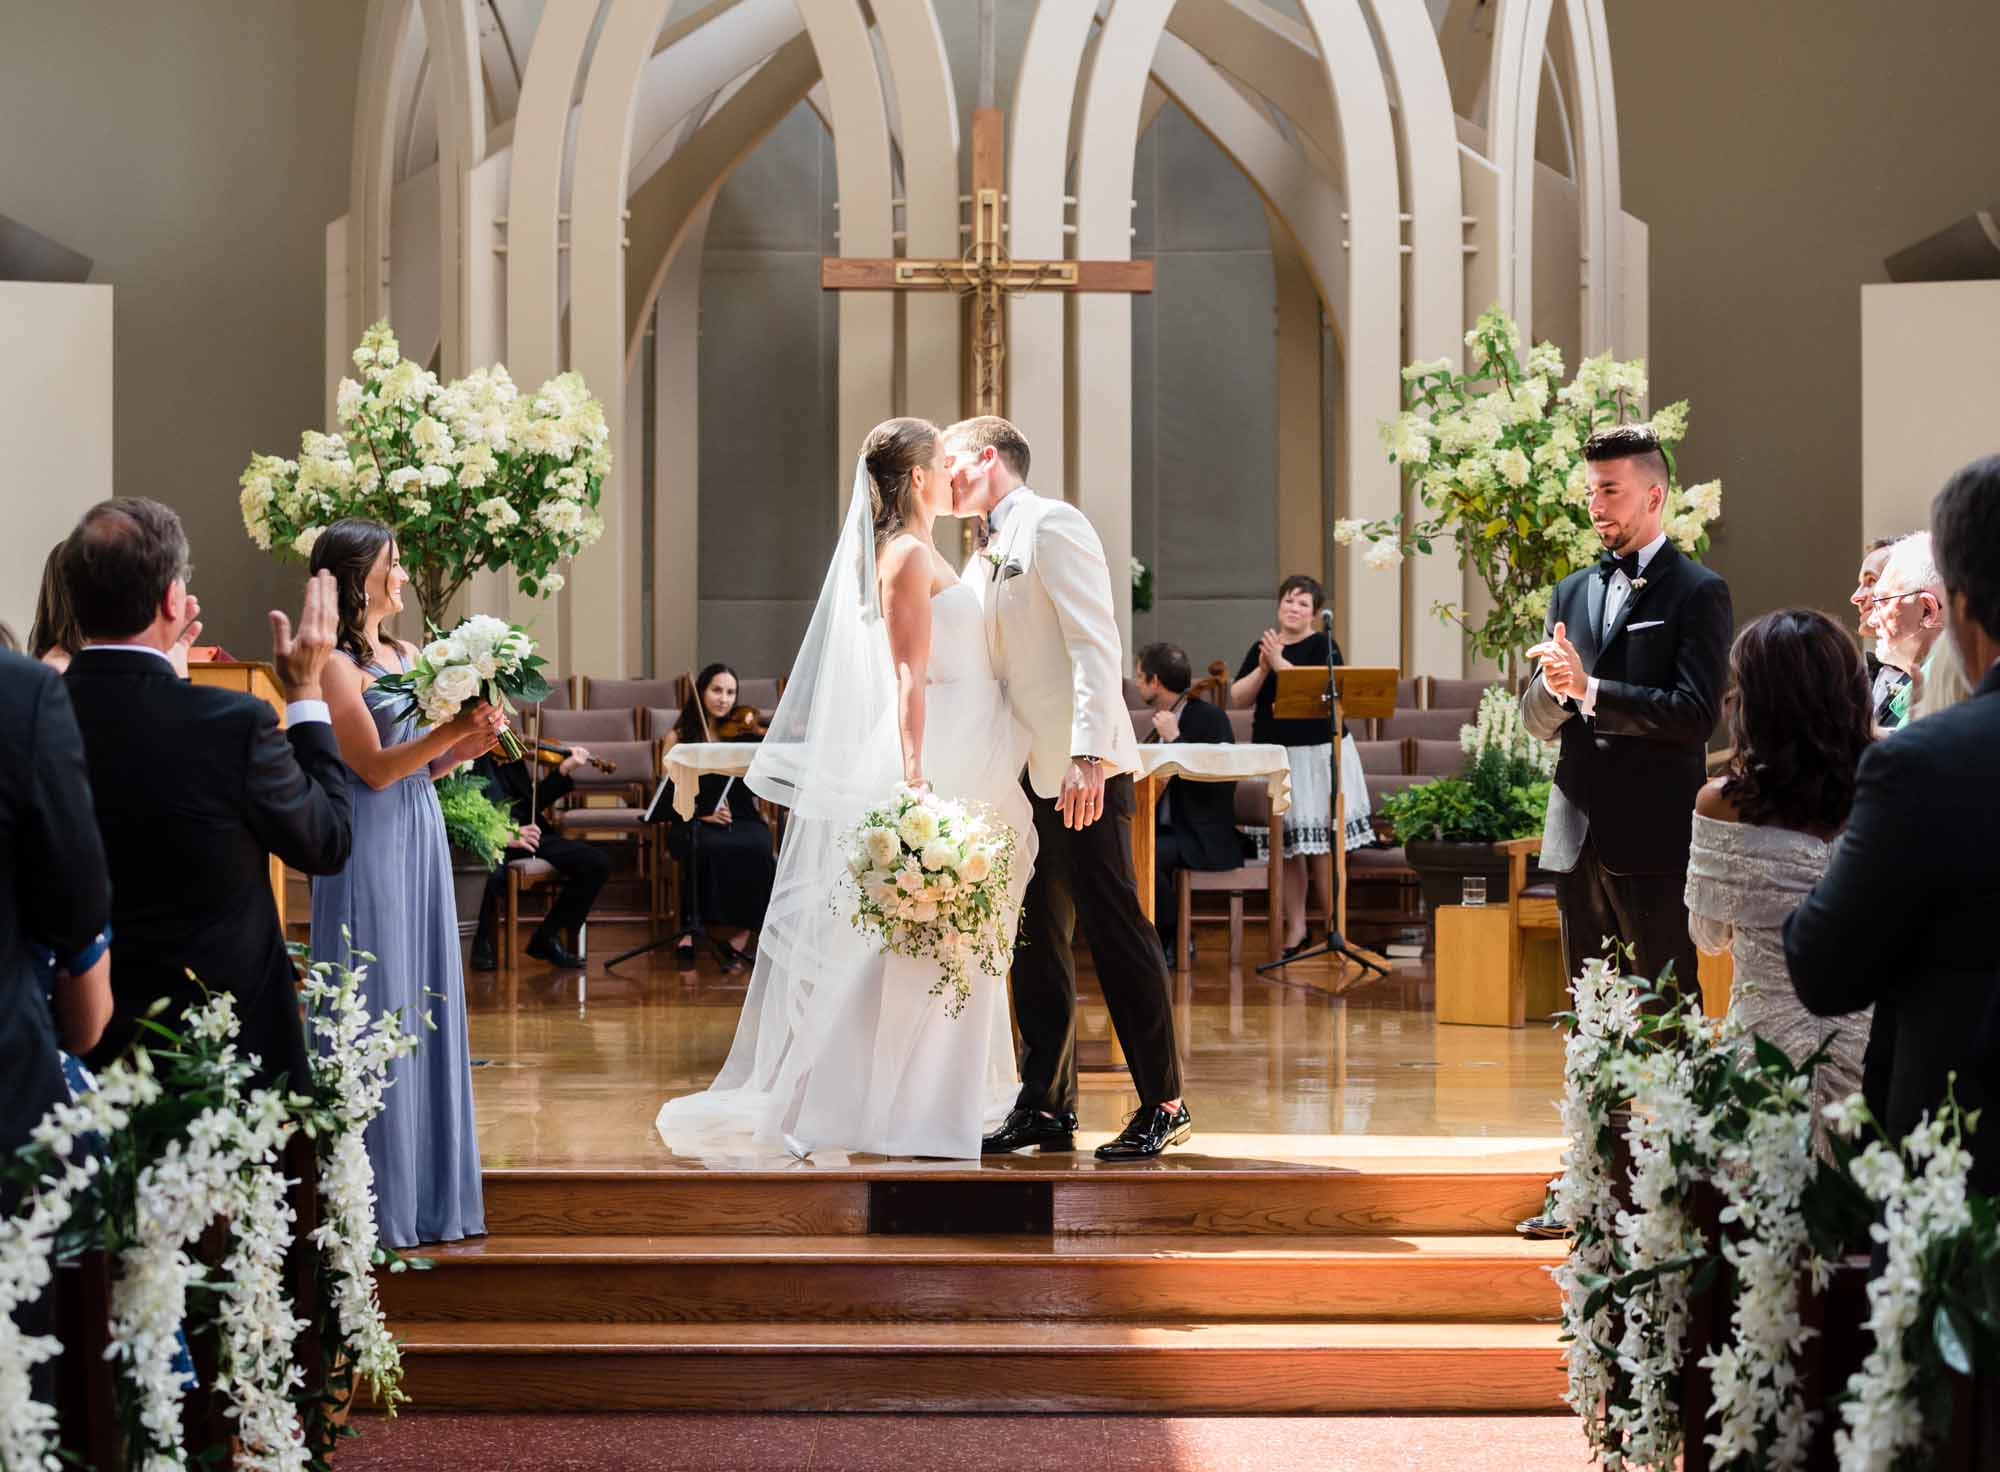 Wedding couple kissing at church altar, decorated with white flowers and greenery